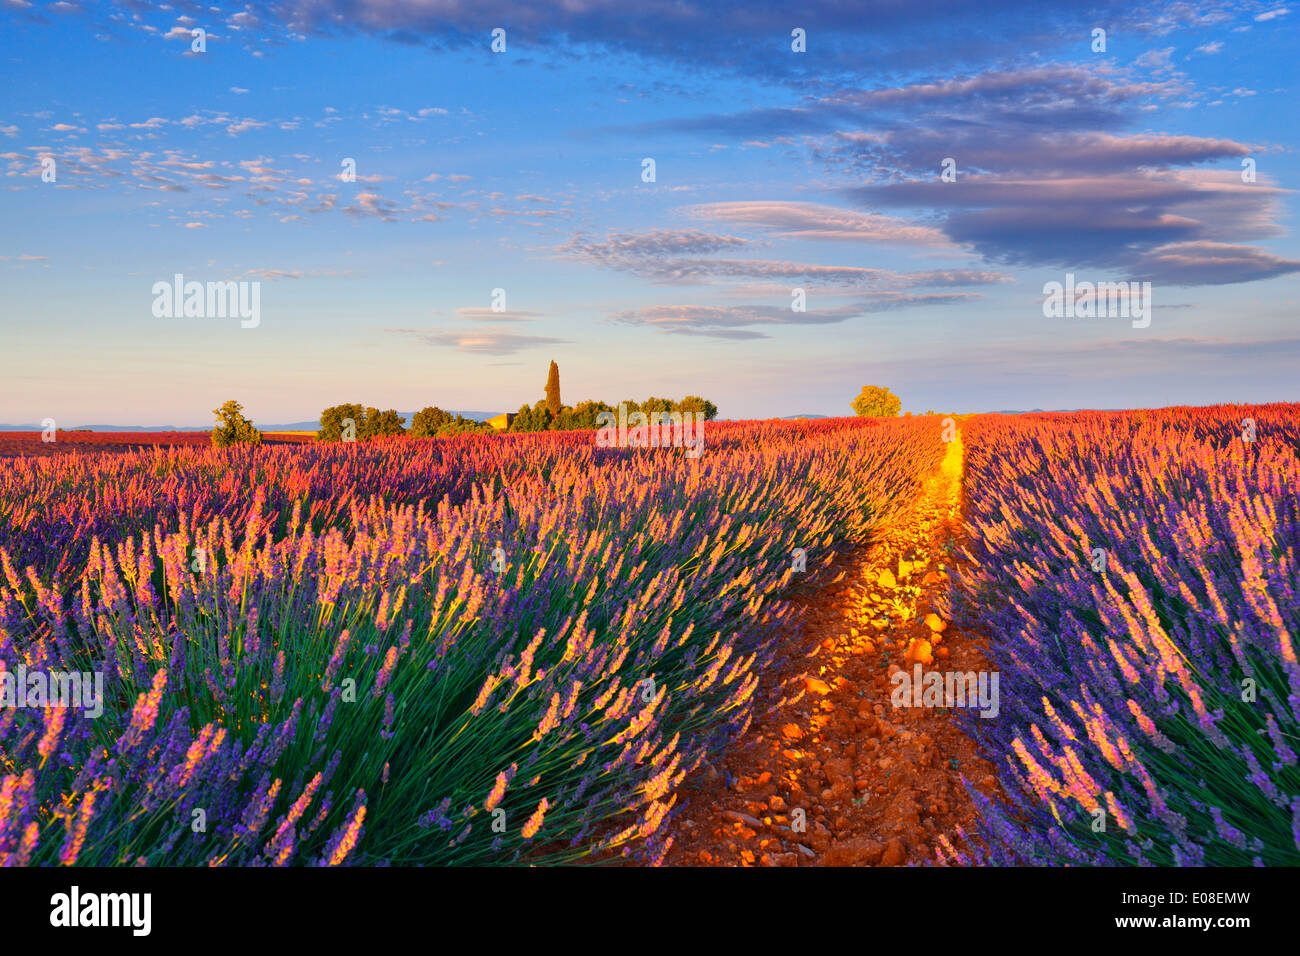 Lavender field in the morning. Valensole, Provence - France. - Stock Image